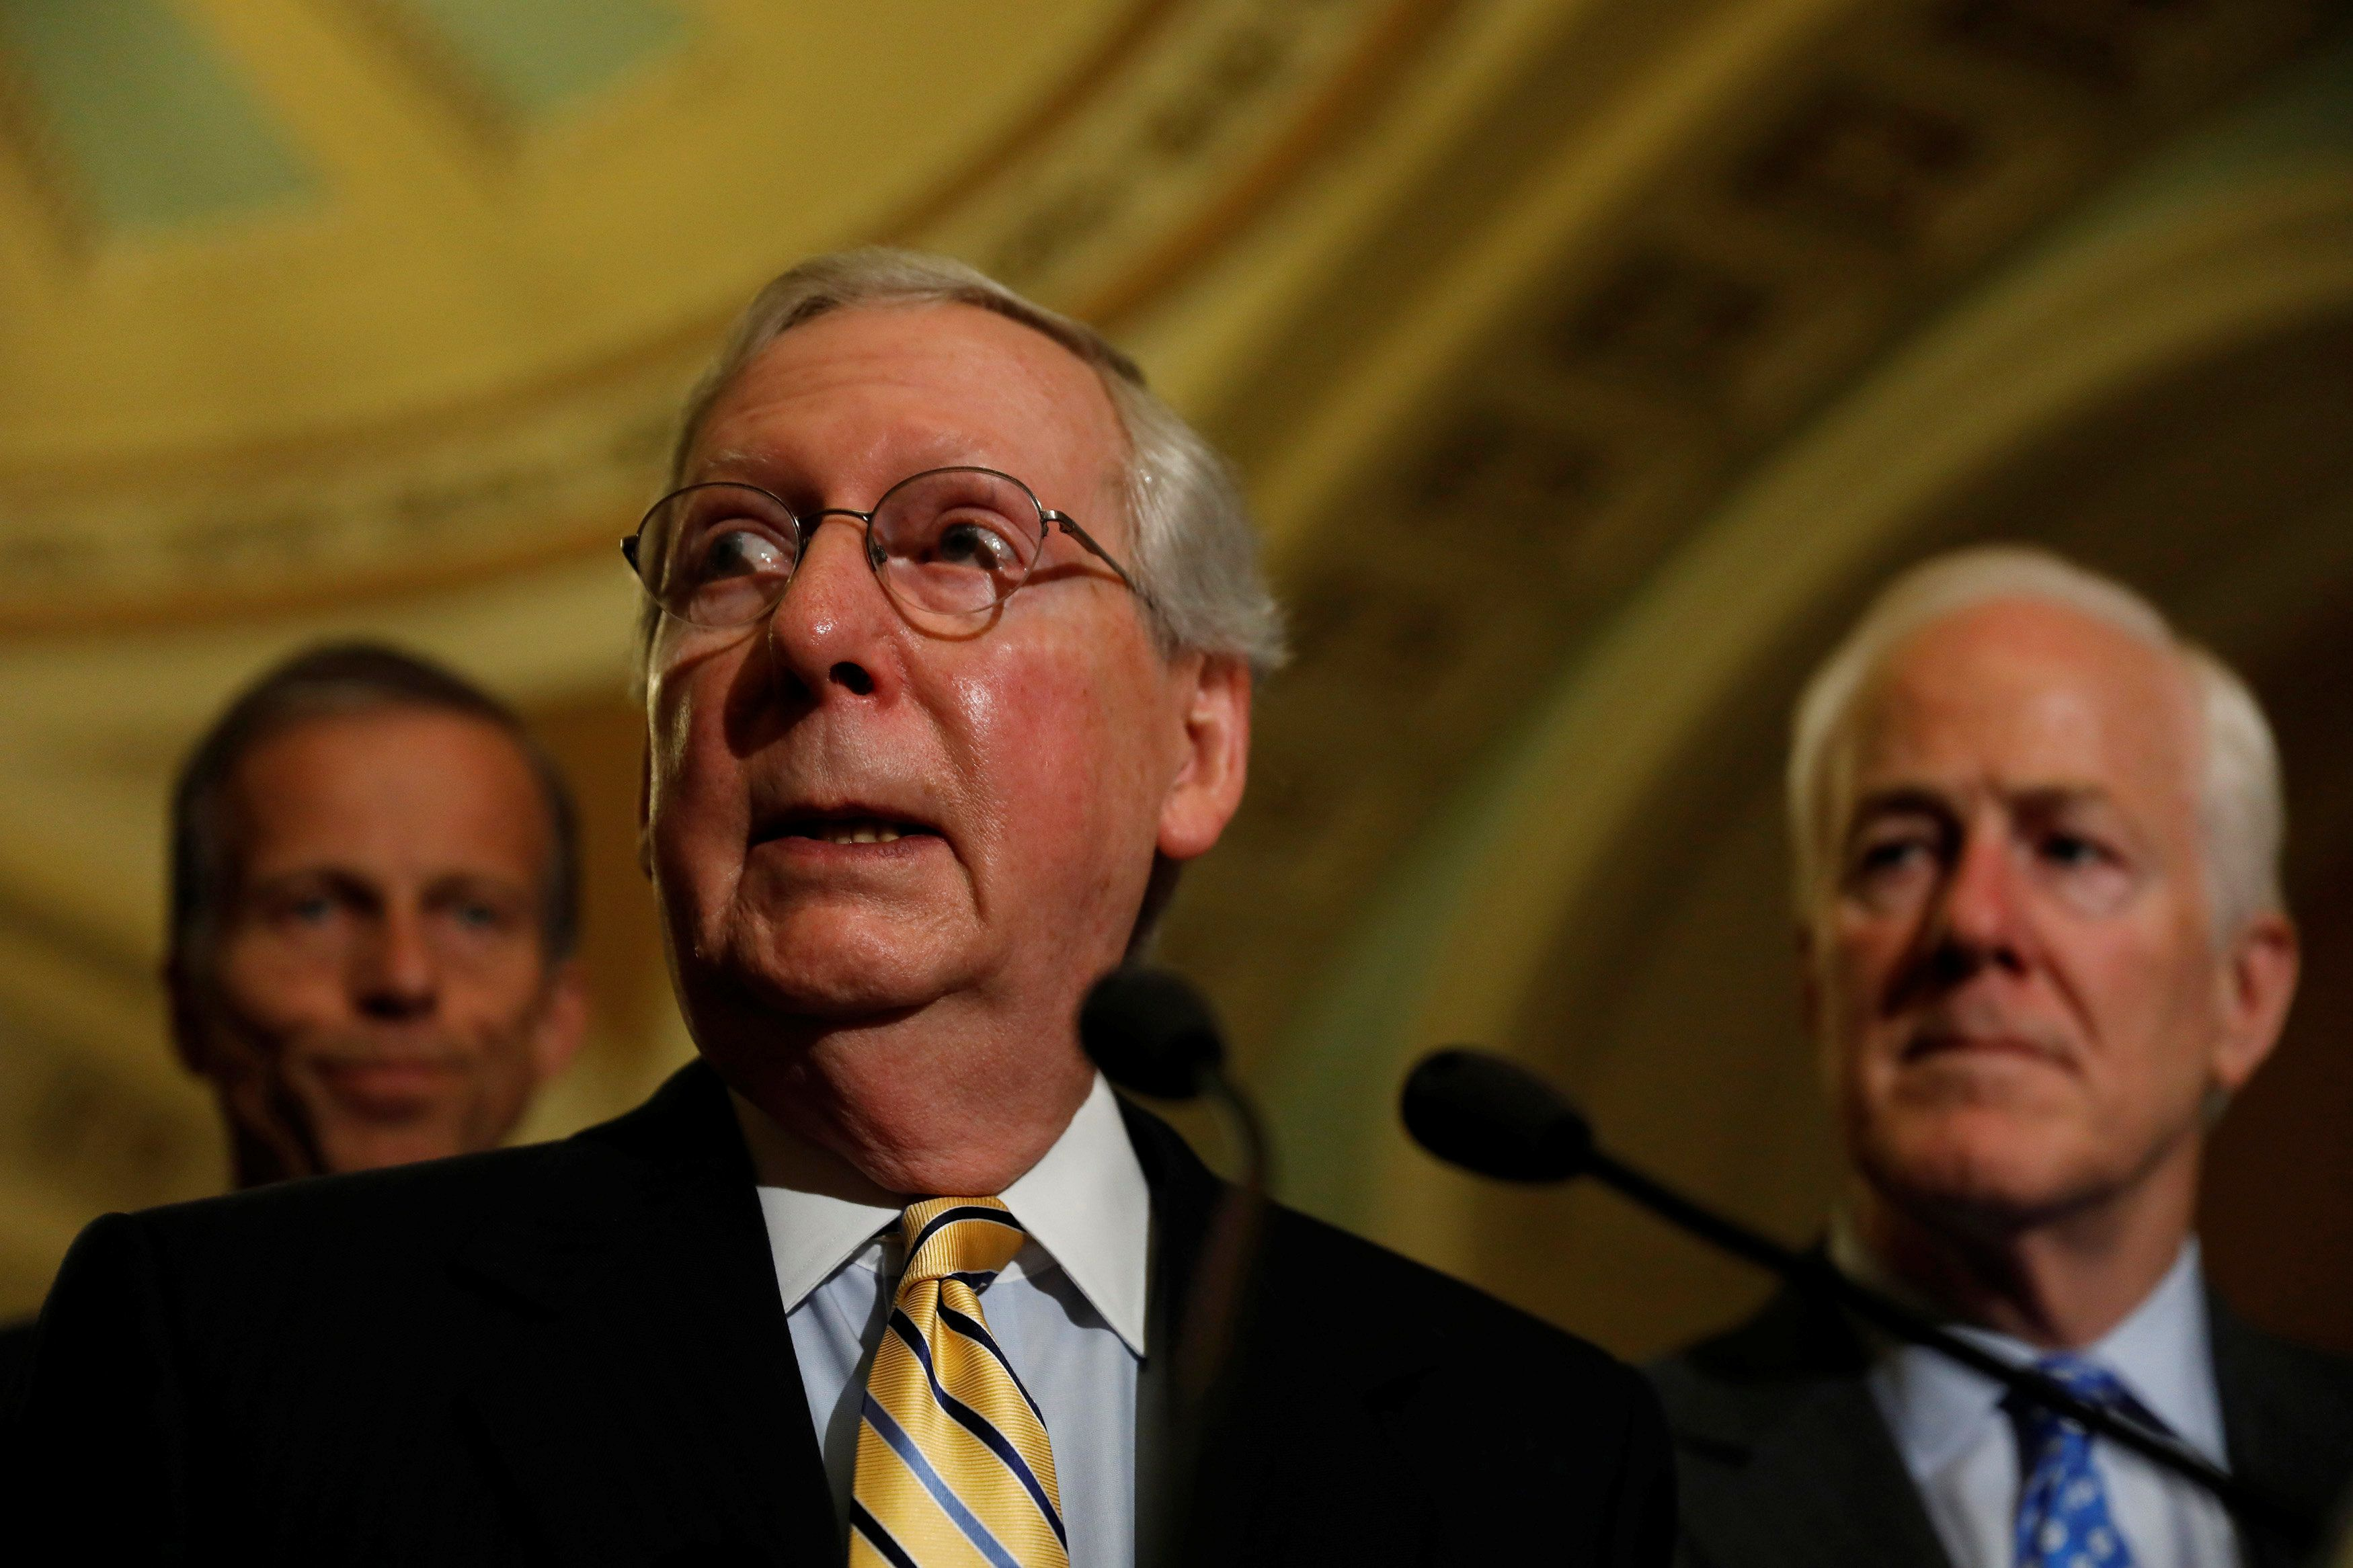 Senate Majority Leader Mitch McConnell, accompanied by Senator John Thune (R-SD) and Senator John Cornyn (R-TX), speaks with reporters following the successful vote to open debate on a health care bill on Capitol Hill in Washington, U.S., July 25, 2017. REUTERS/Aaron P. Bernstein